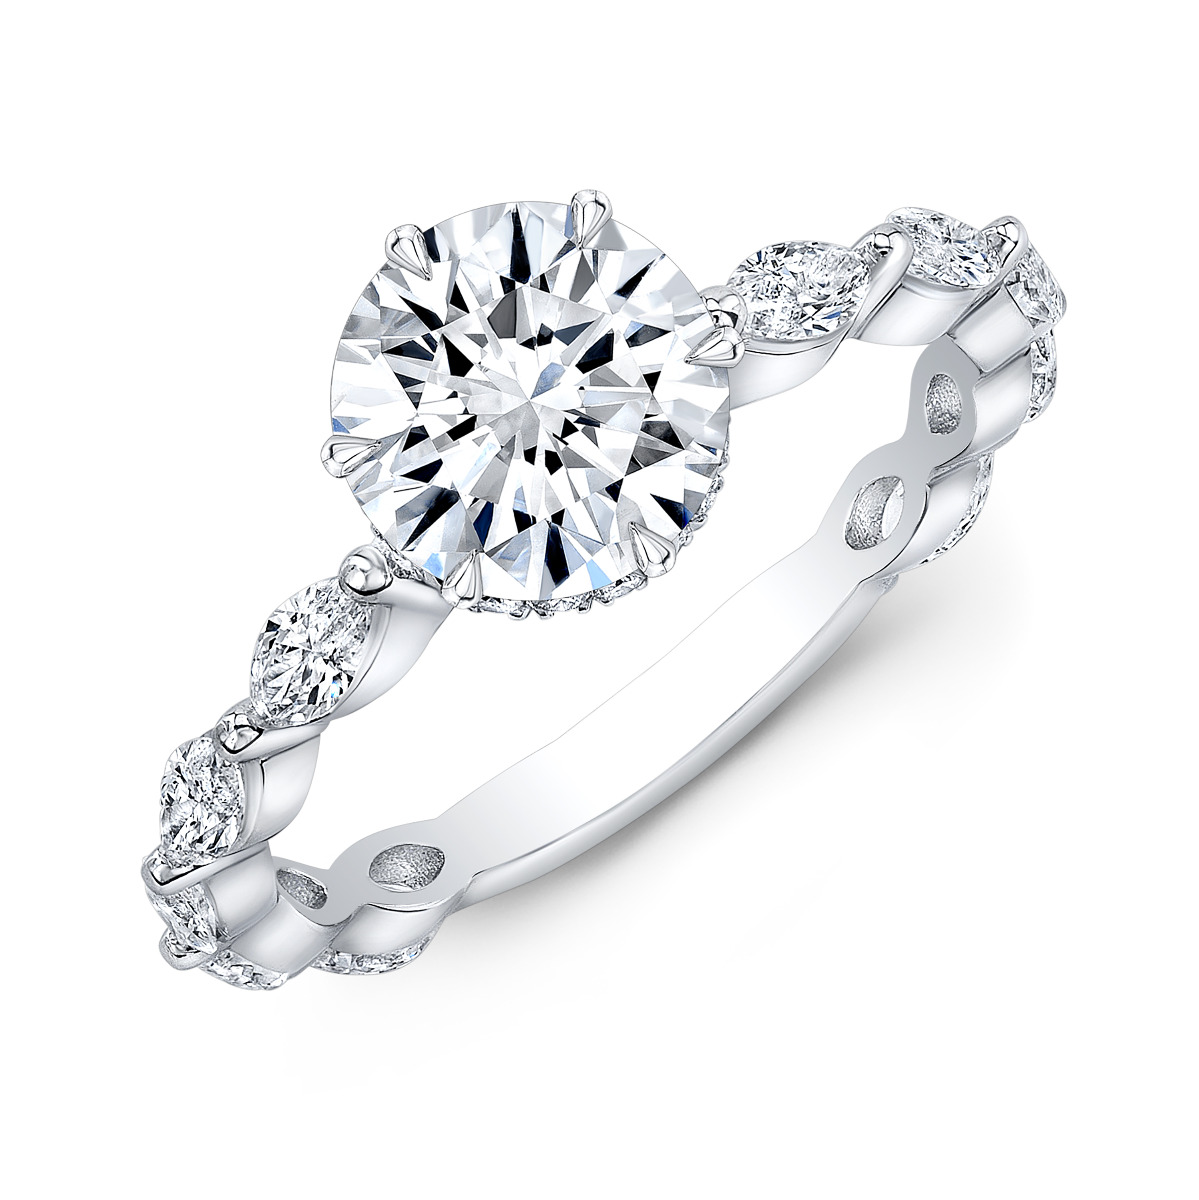 Hidden Halo Pave Marquise Shank Diamond Engagement Ring